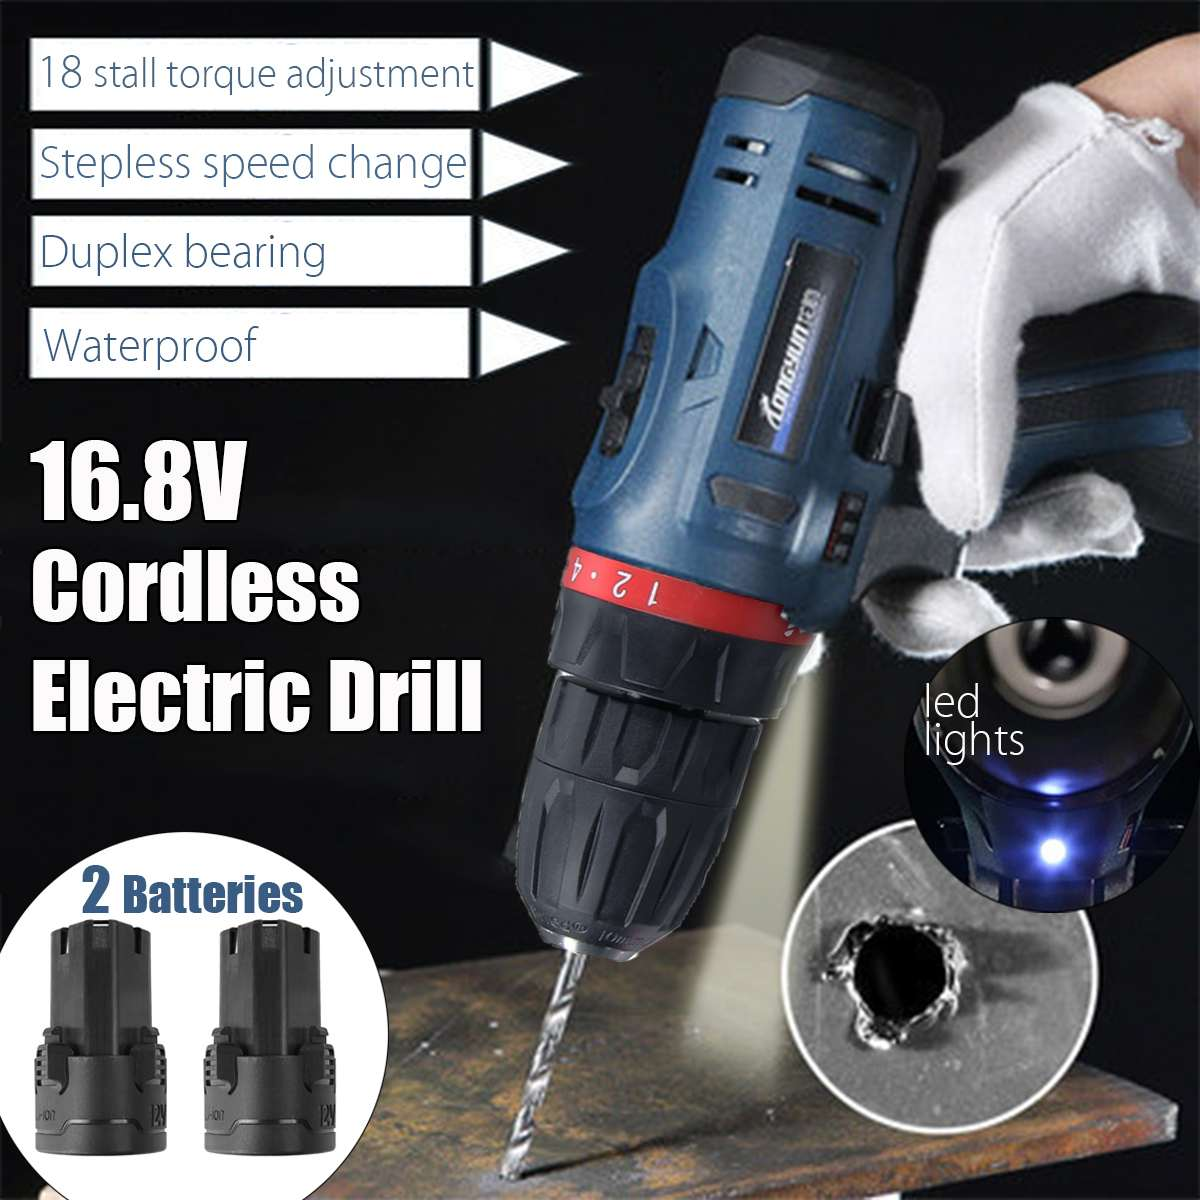 16.8V Li-Ion 2/5 LED Electric Cordless Hammer Drill Driver Mini Impact Drill W/ 2 Batteries 2 Speed Power Tools16.8V Li-Ion 2/5 LED Electric Cordless Hammer Drill Driver Mini Impact Drill W/ 2 Batteries 2 Speed Power Tools